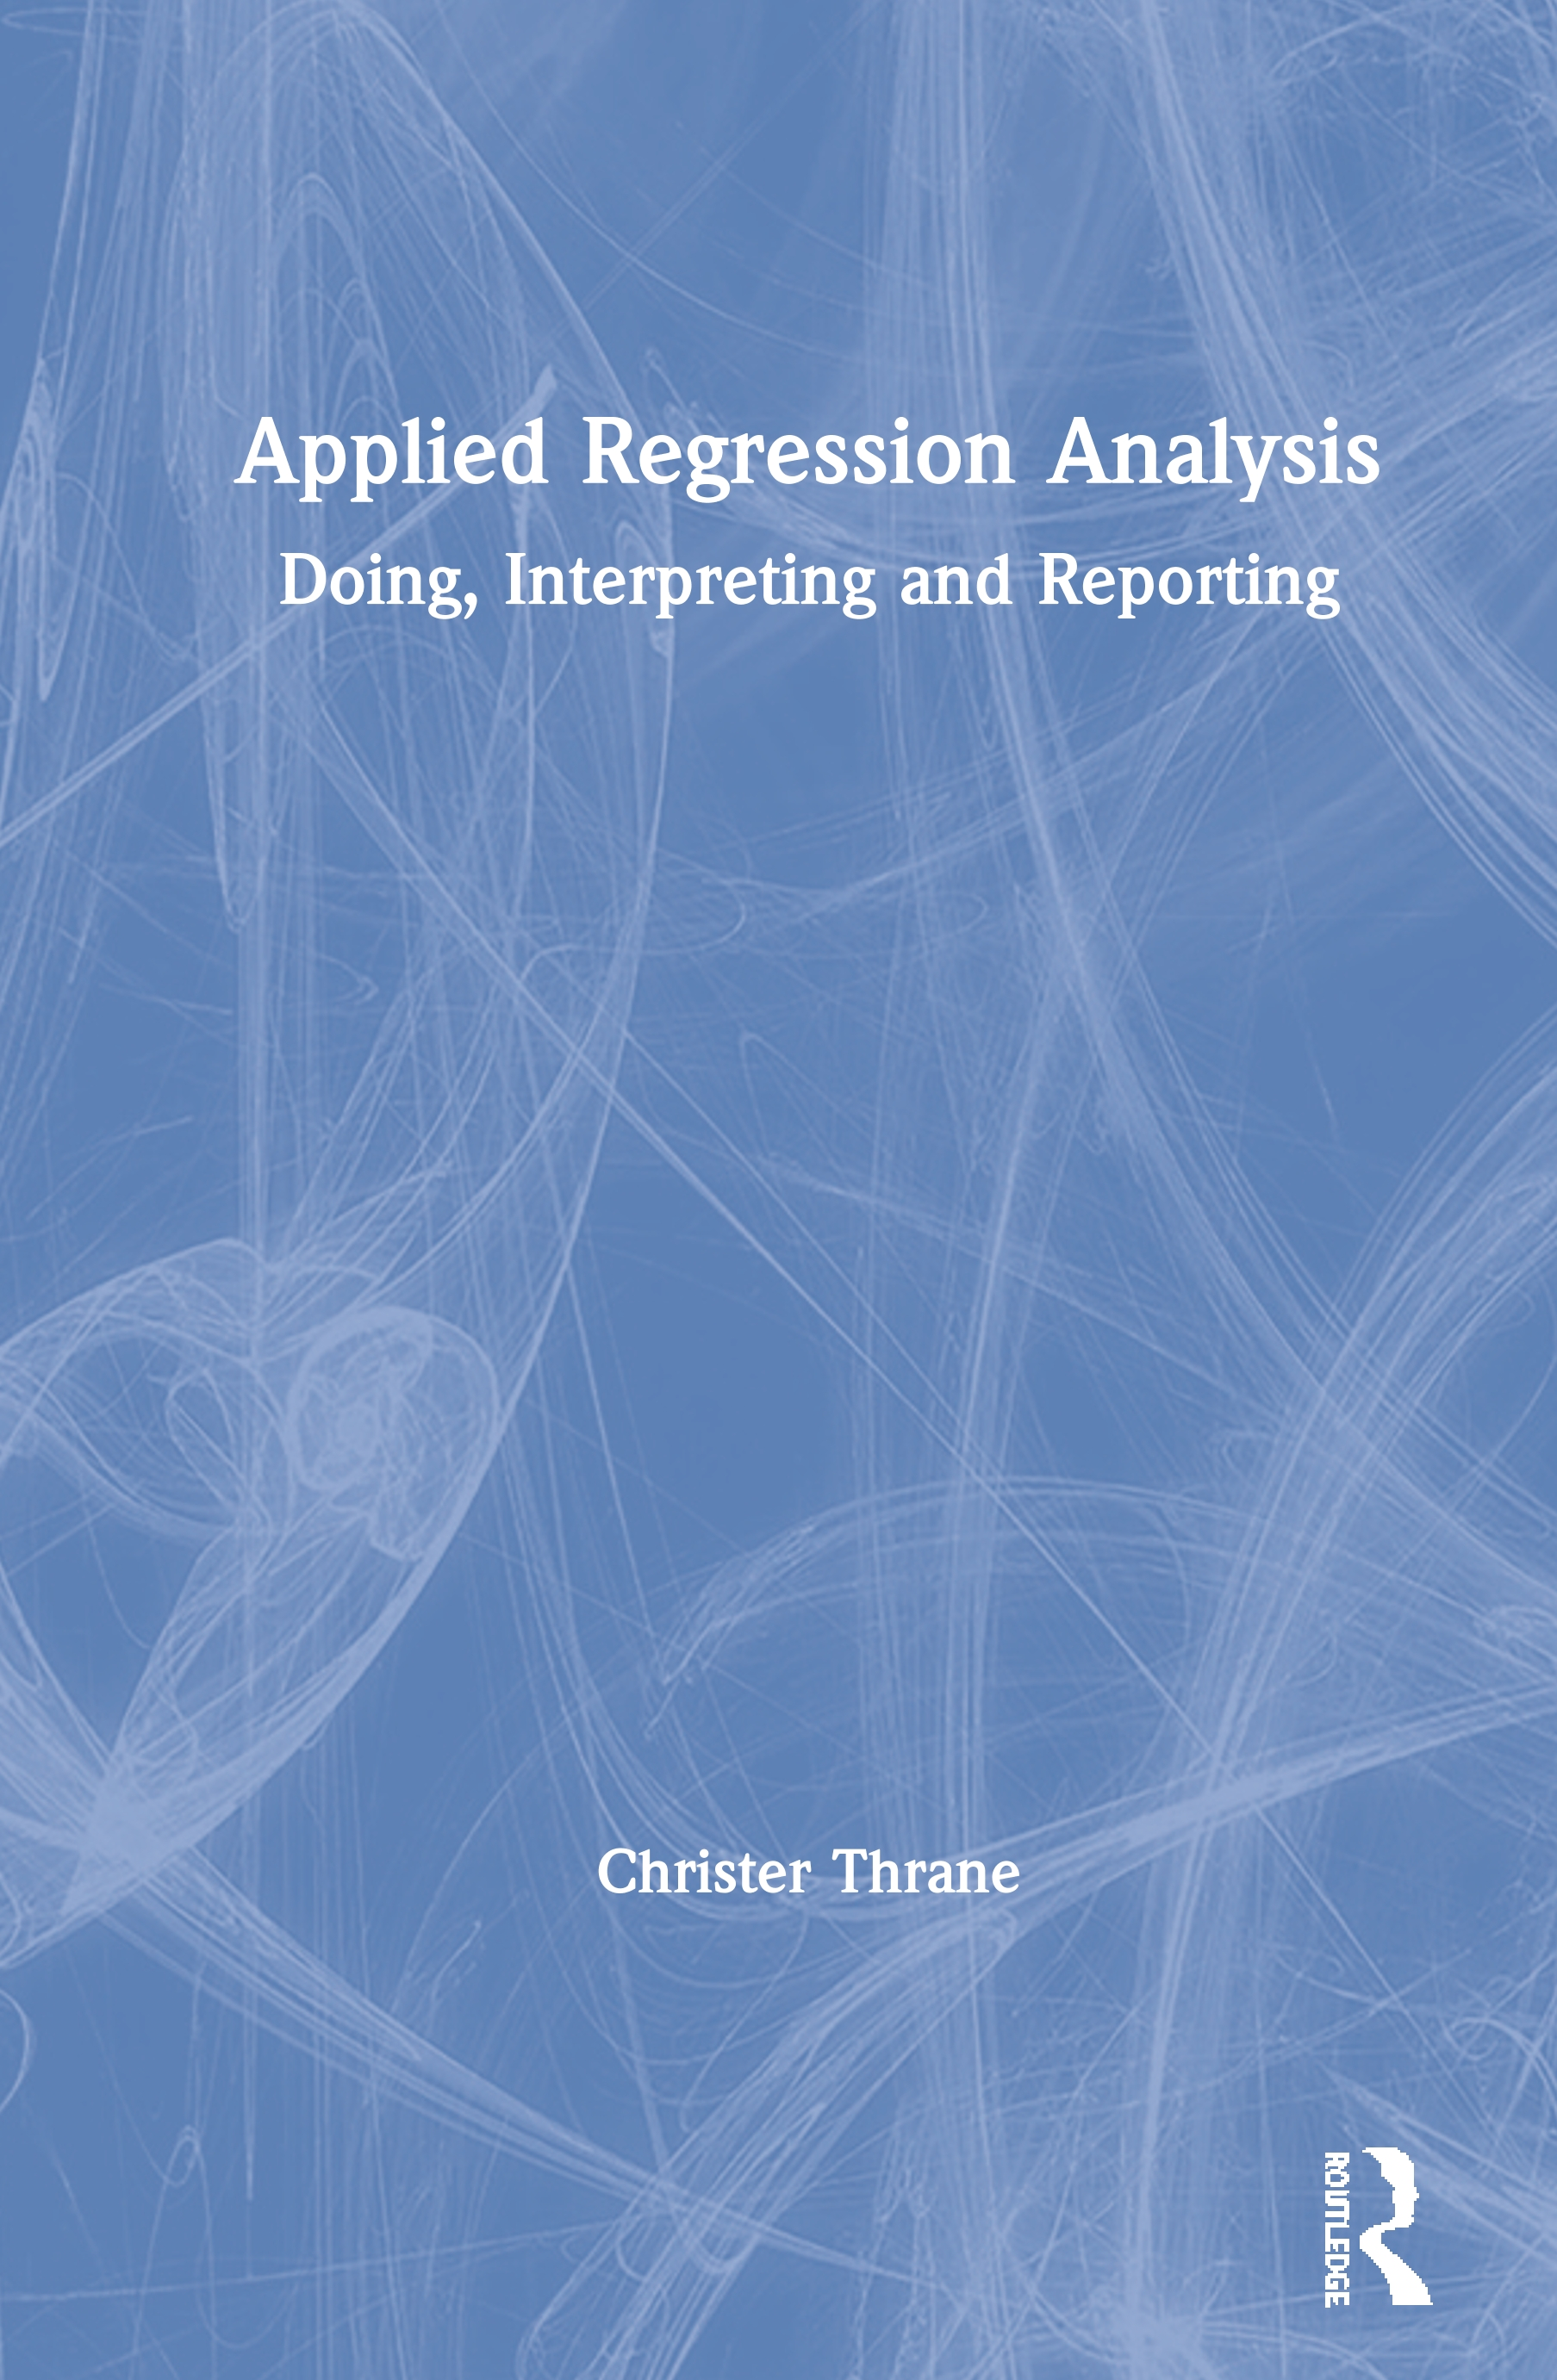 Applied Regression Analysis: Doing, Interpreting and Reporting book cover